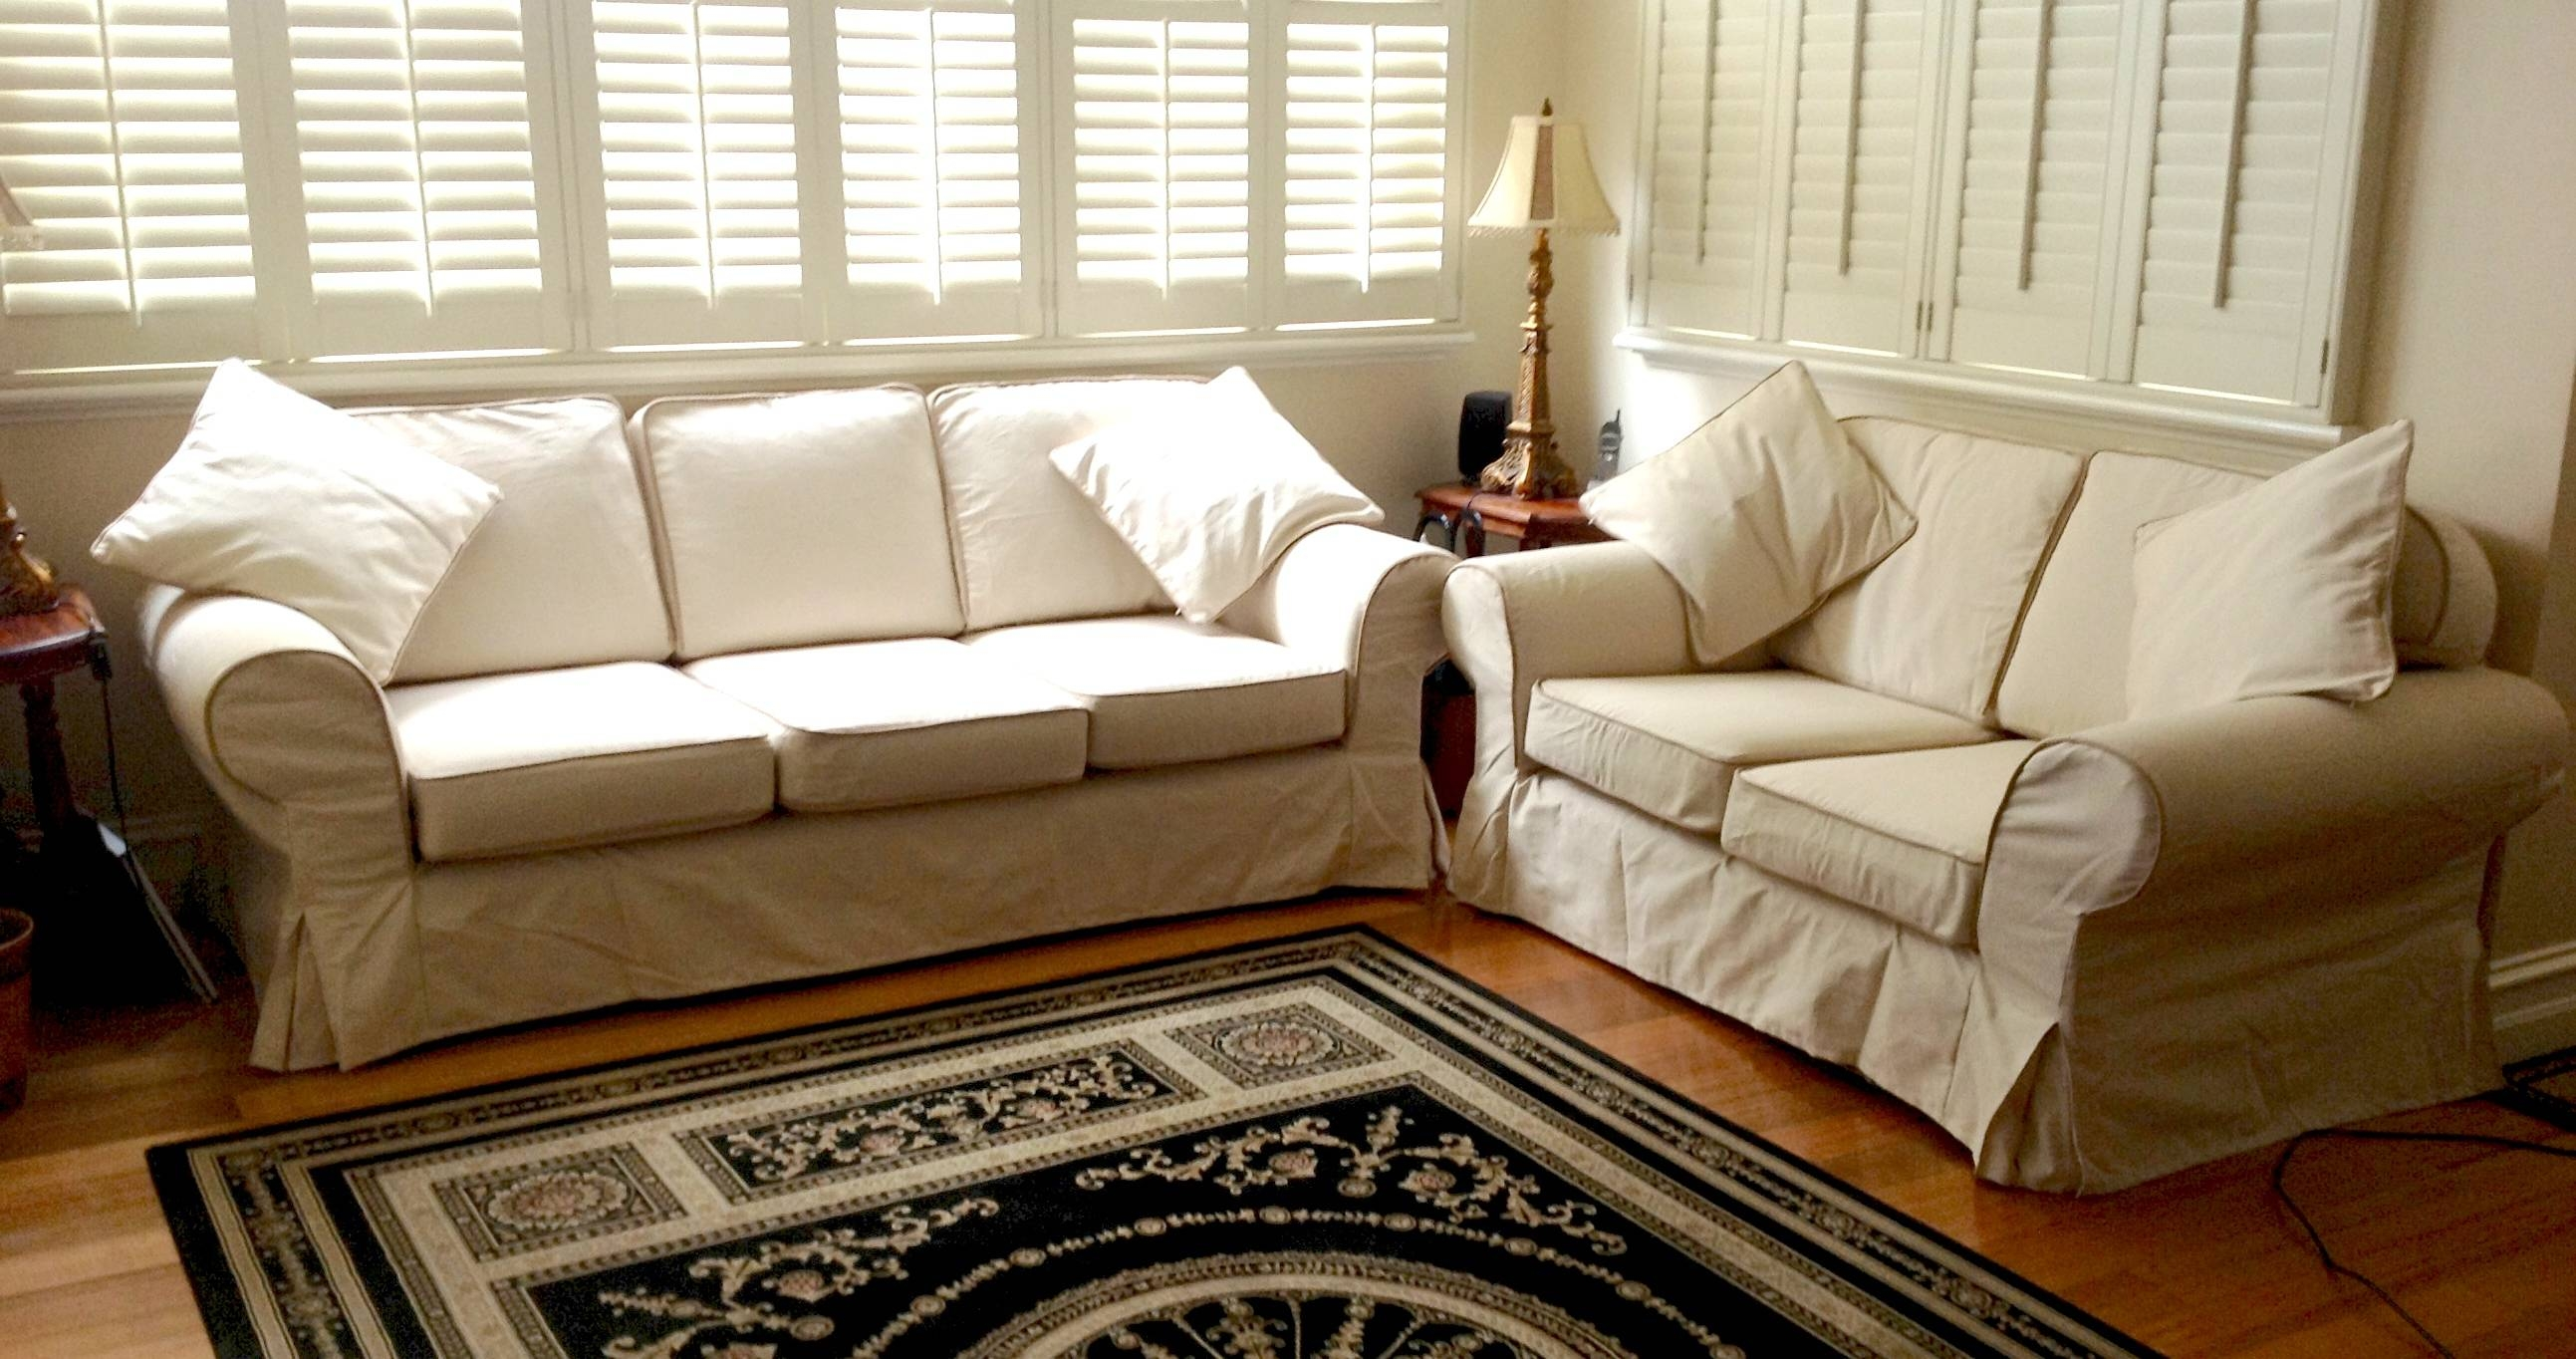 Custom Slipcovers And Couch Cover For Any Sofa Online regarding Slipcovers Sofas (Image 8 of 30)